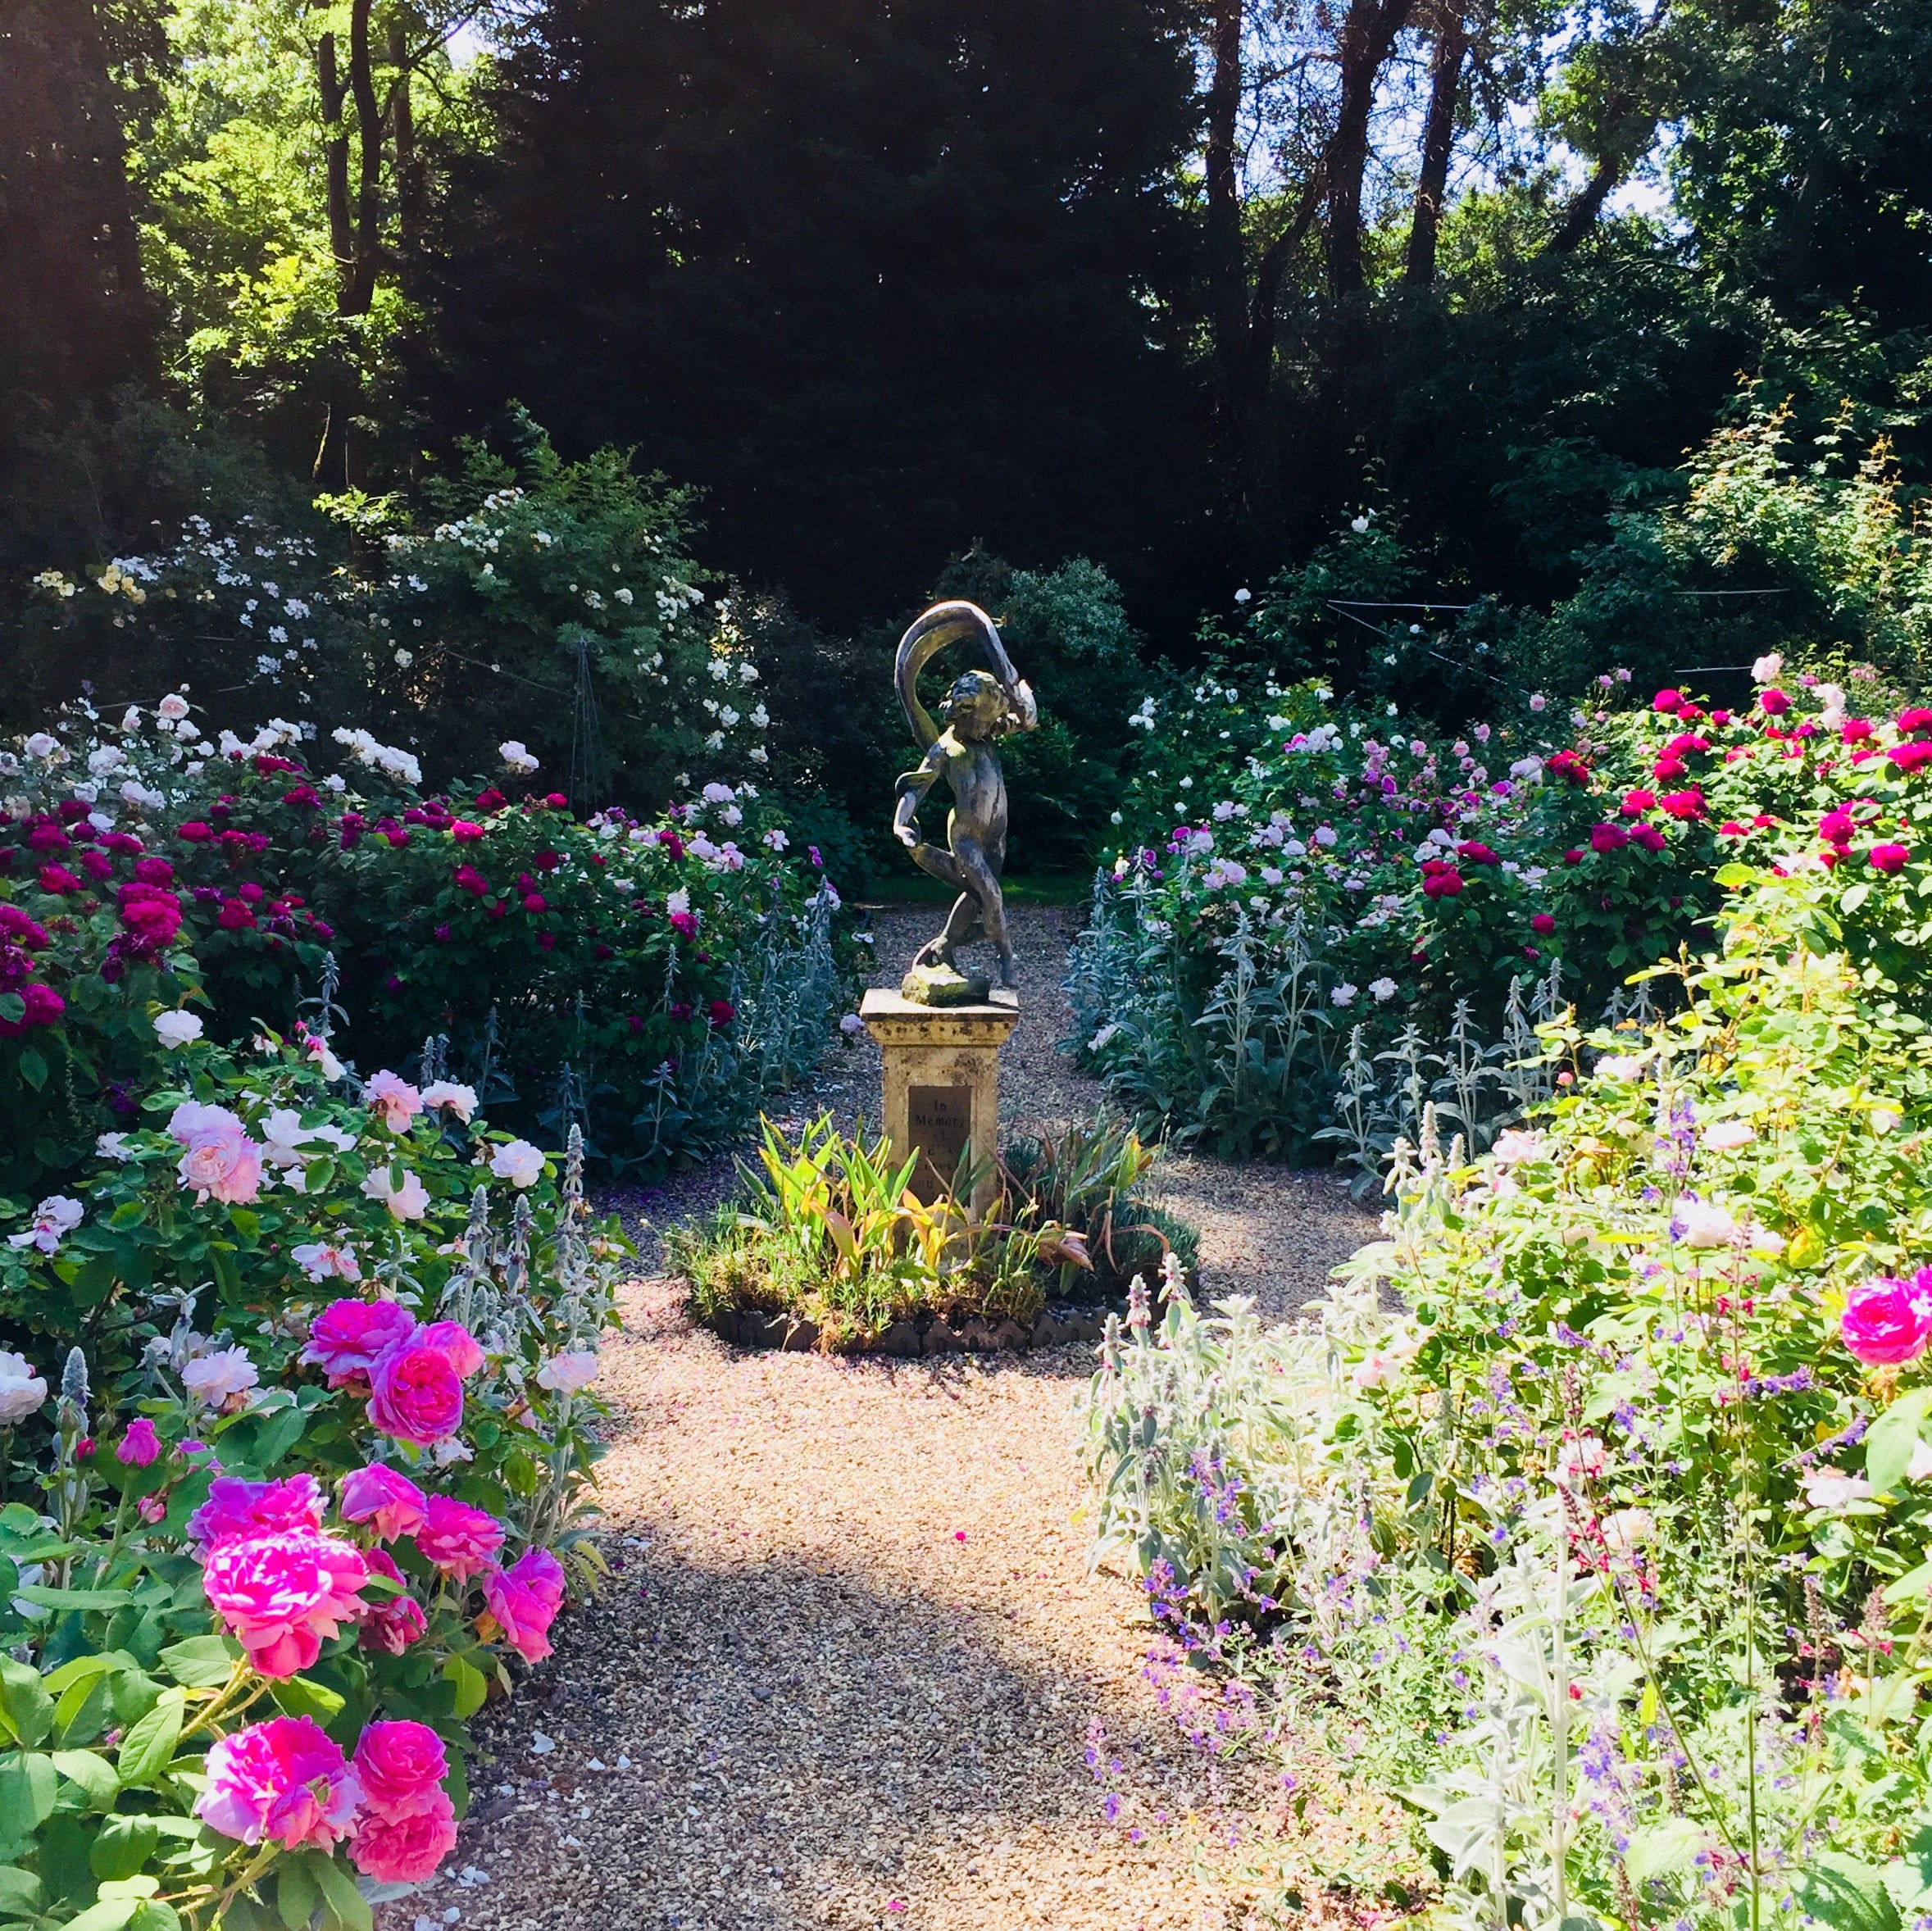 The Rose Garden in bloom at Reveley Lodge.